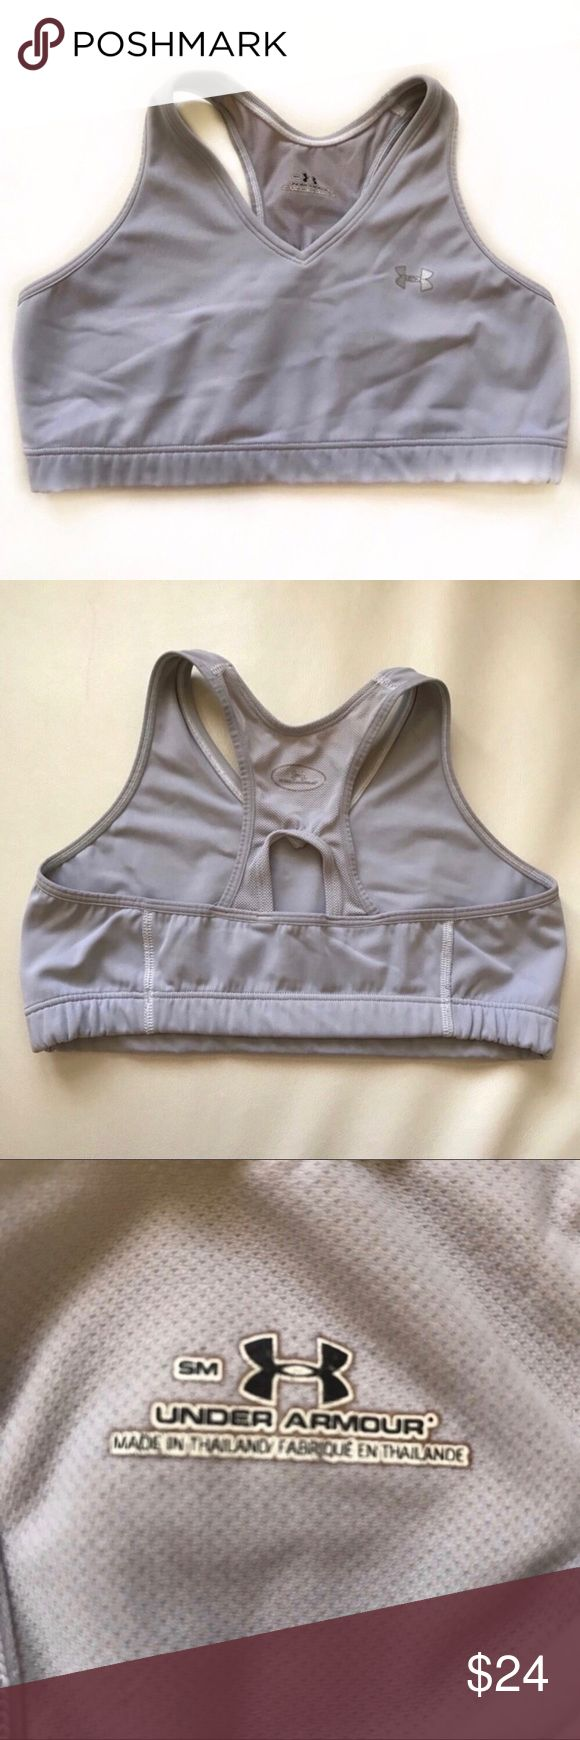 """UNDER ARMOUR gray grey sports bra small Perfect for gym or sports. Runs a bit small. Pls read measurements.  🏃🏻♀️Underbust 24"""" 🏃🏻♀️Pit to pit 12"""" 🏃🏻♀️Length 9.5"""" Under Armour Intimates & Sleepwear Bras"""